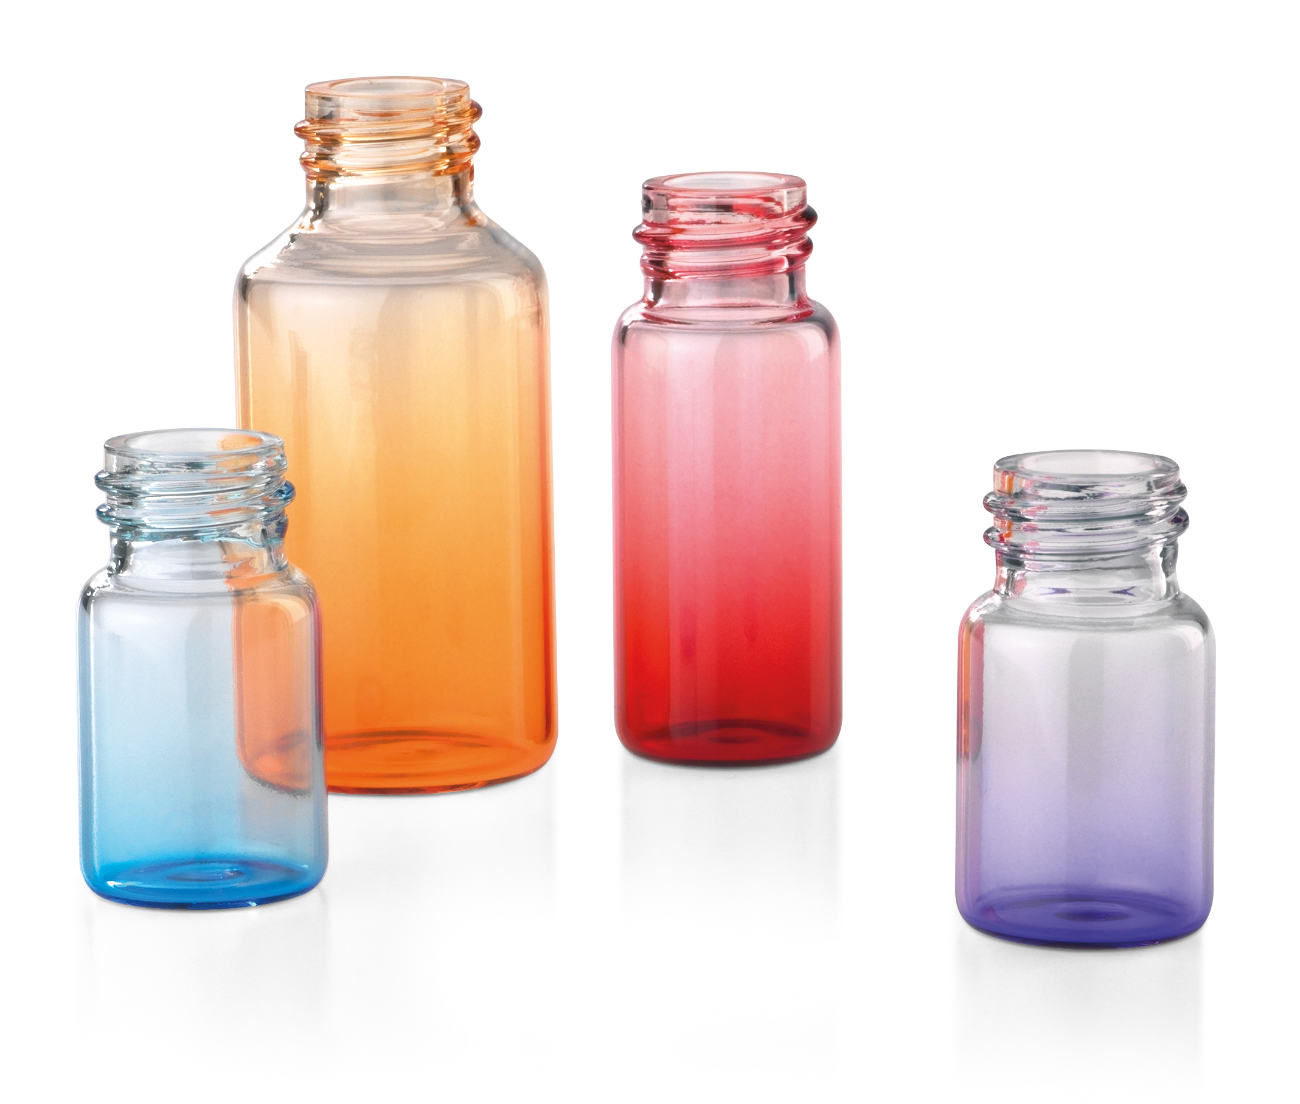 Glass tube bottles for cosmetics, colored with gradient